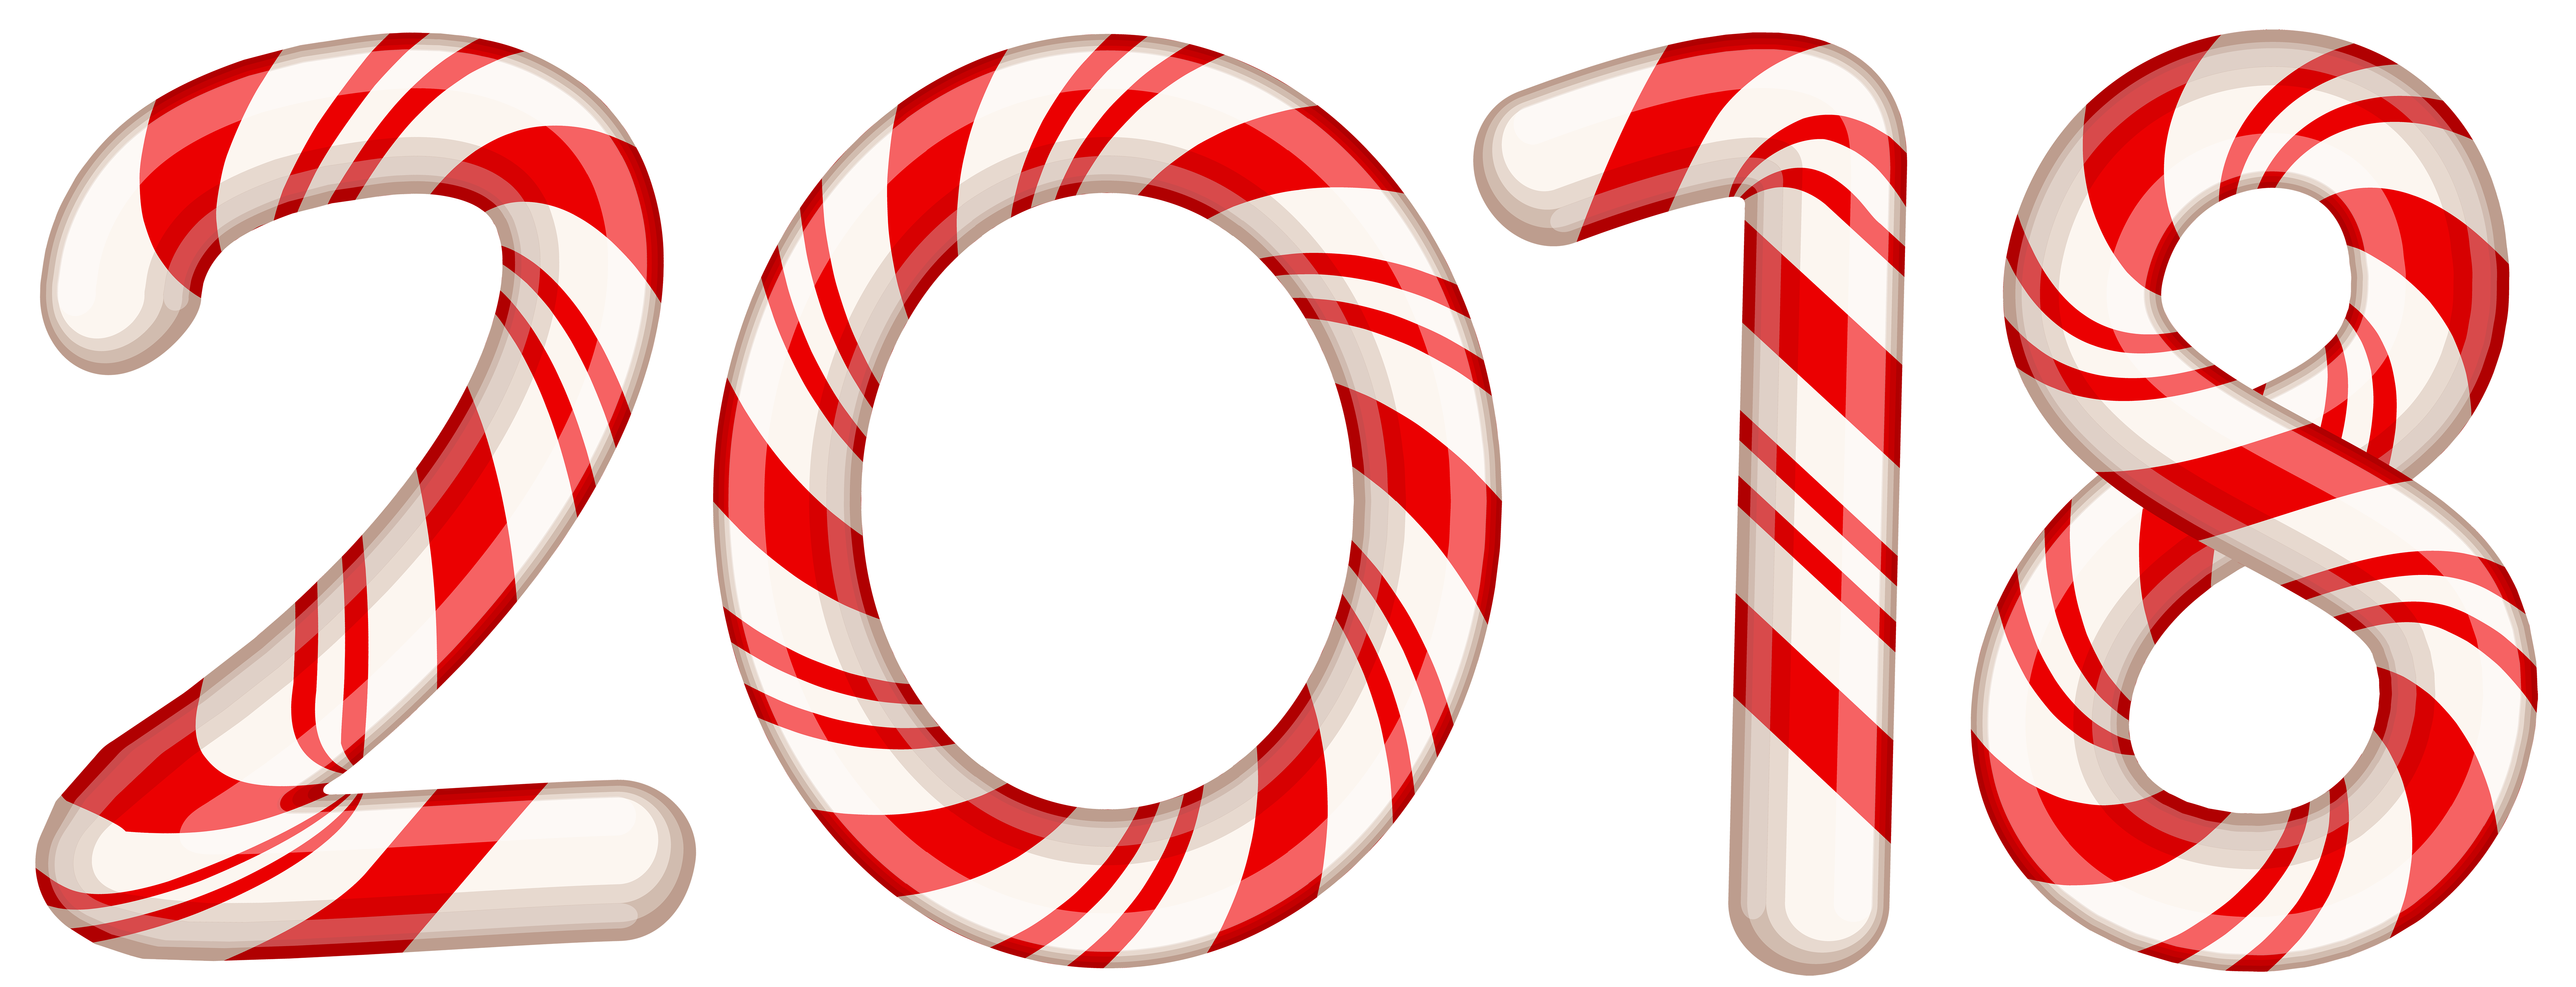 image royalty free stock Christmas candy at getdrawings. Cane clipart three.